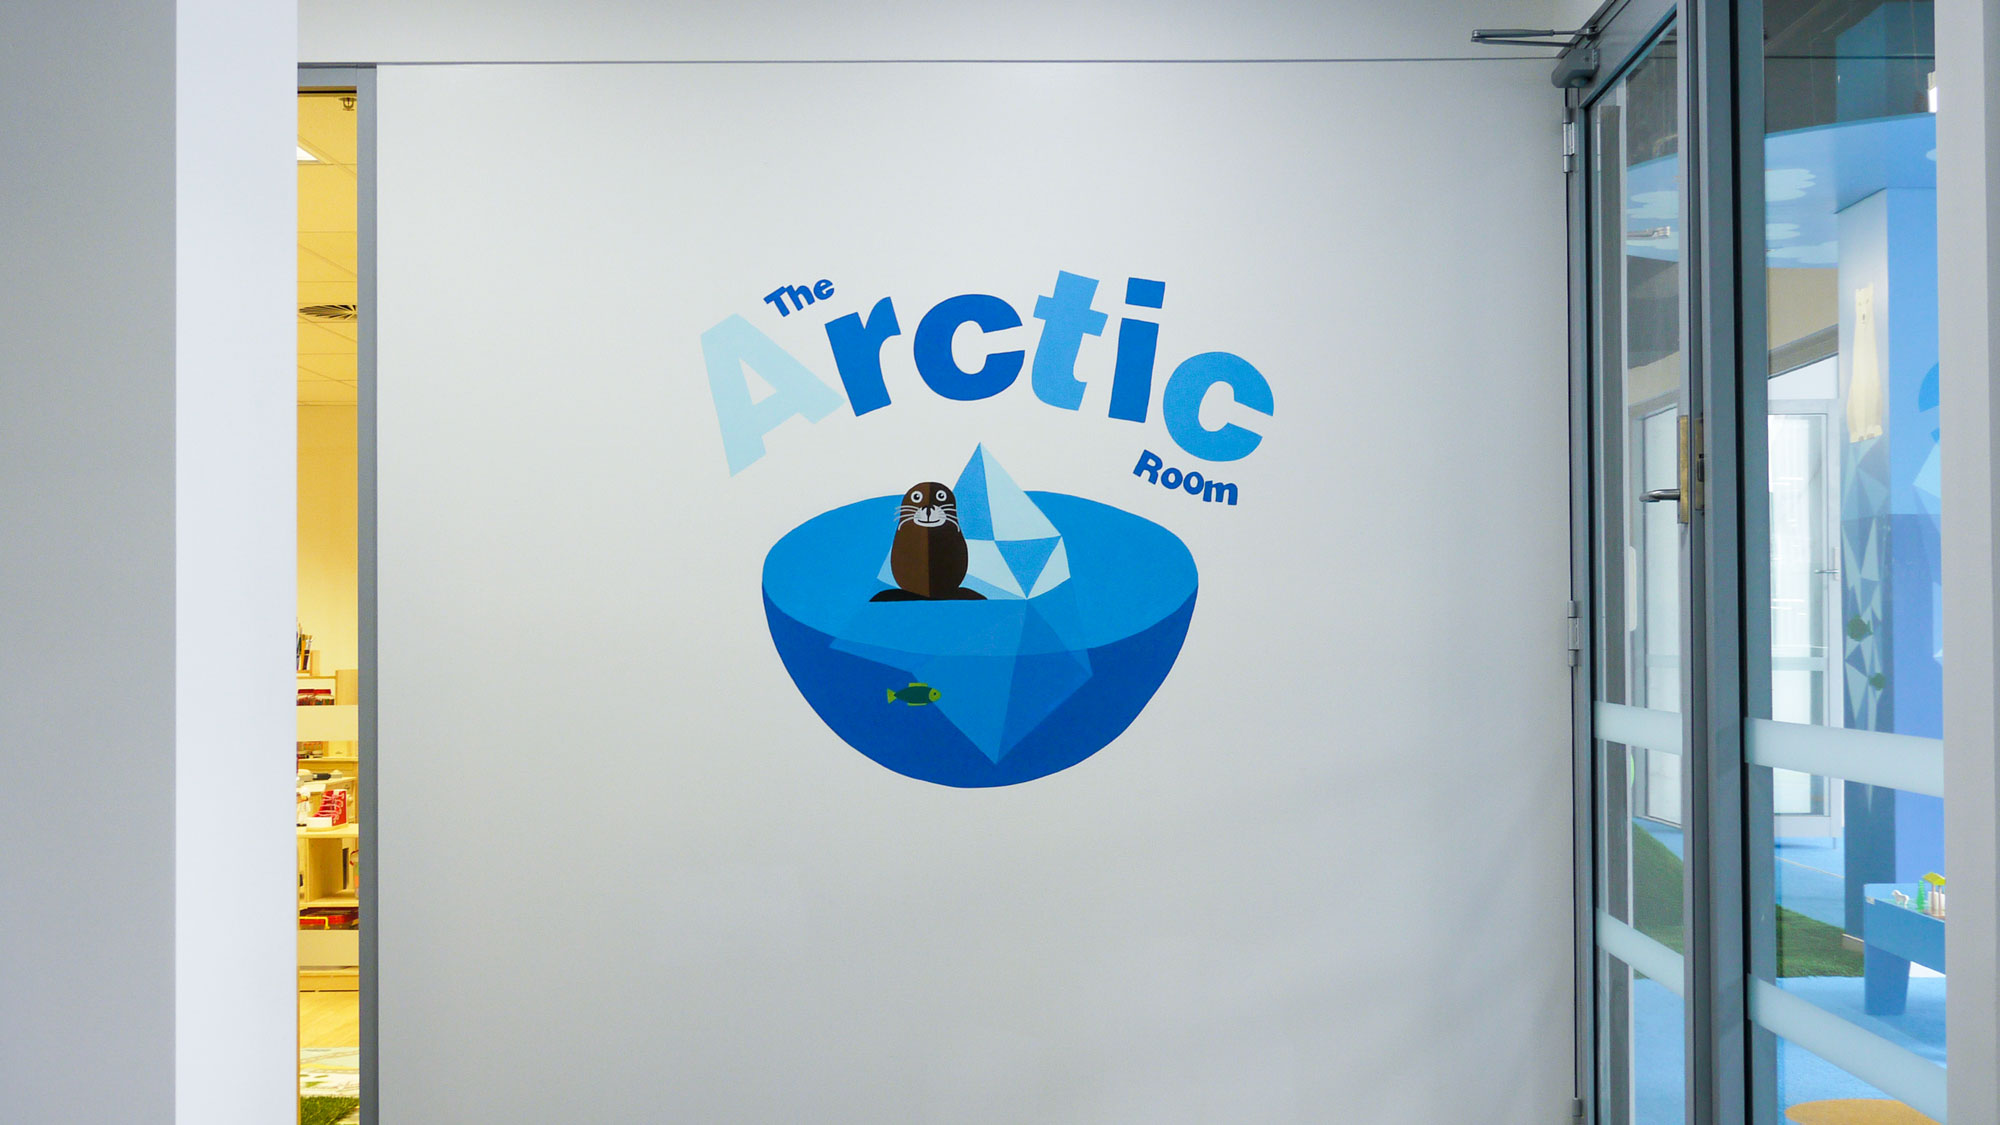 the-art-of-wall-child-care-center-mural-arctic-room-title